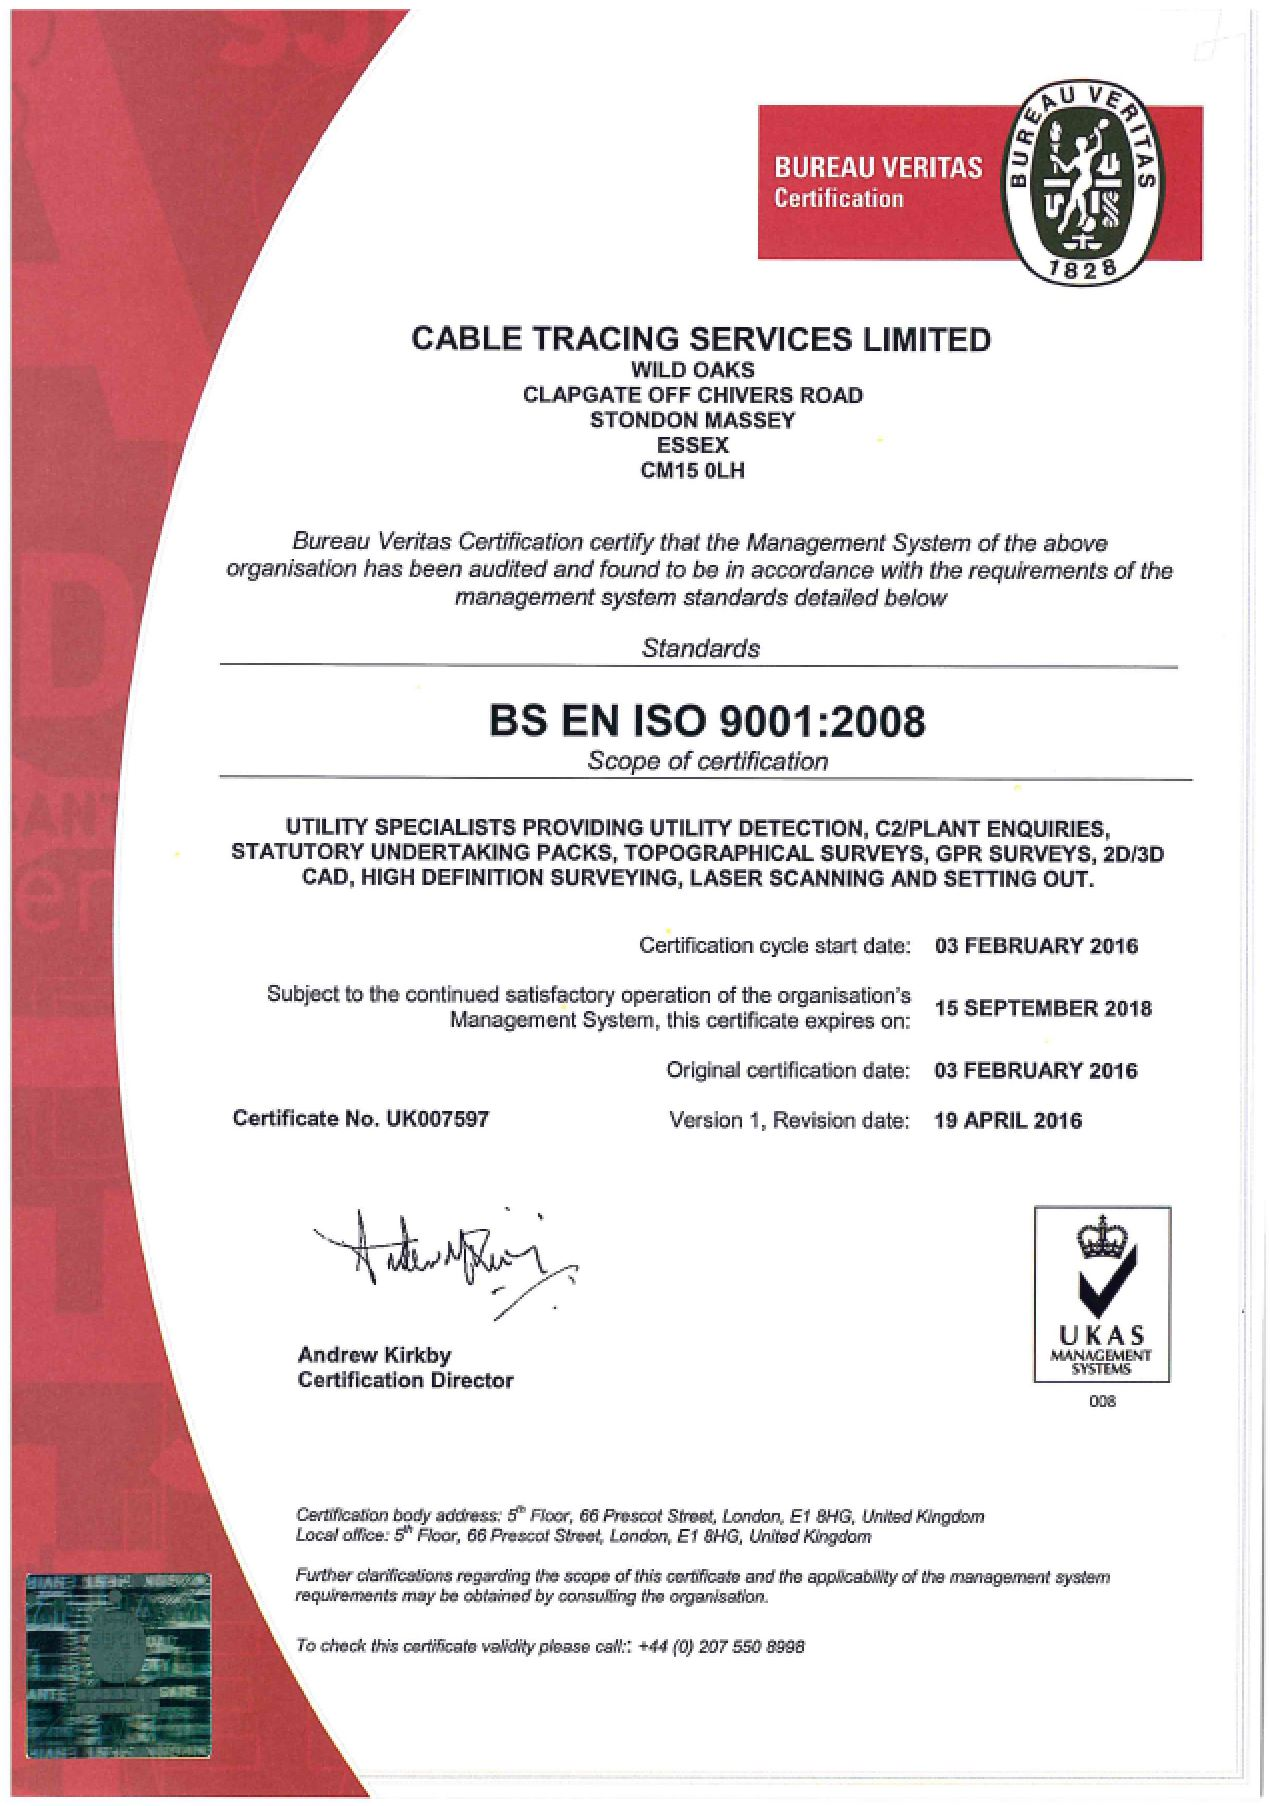 CTS ISO 9001